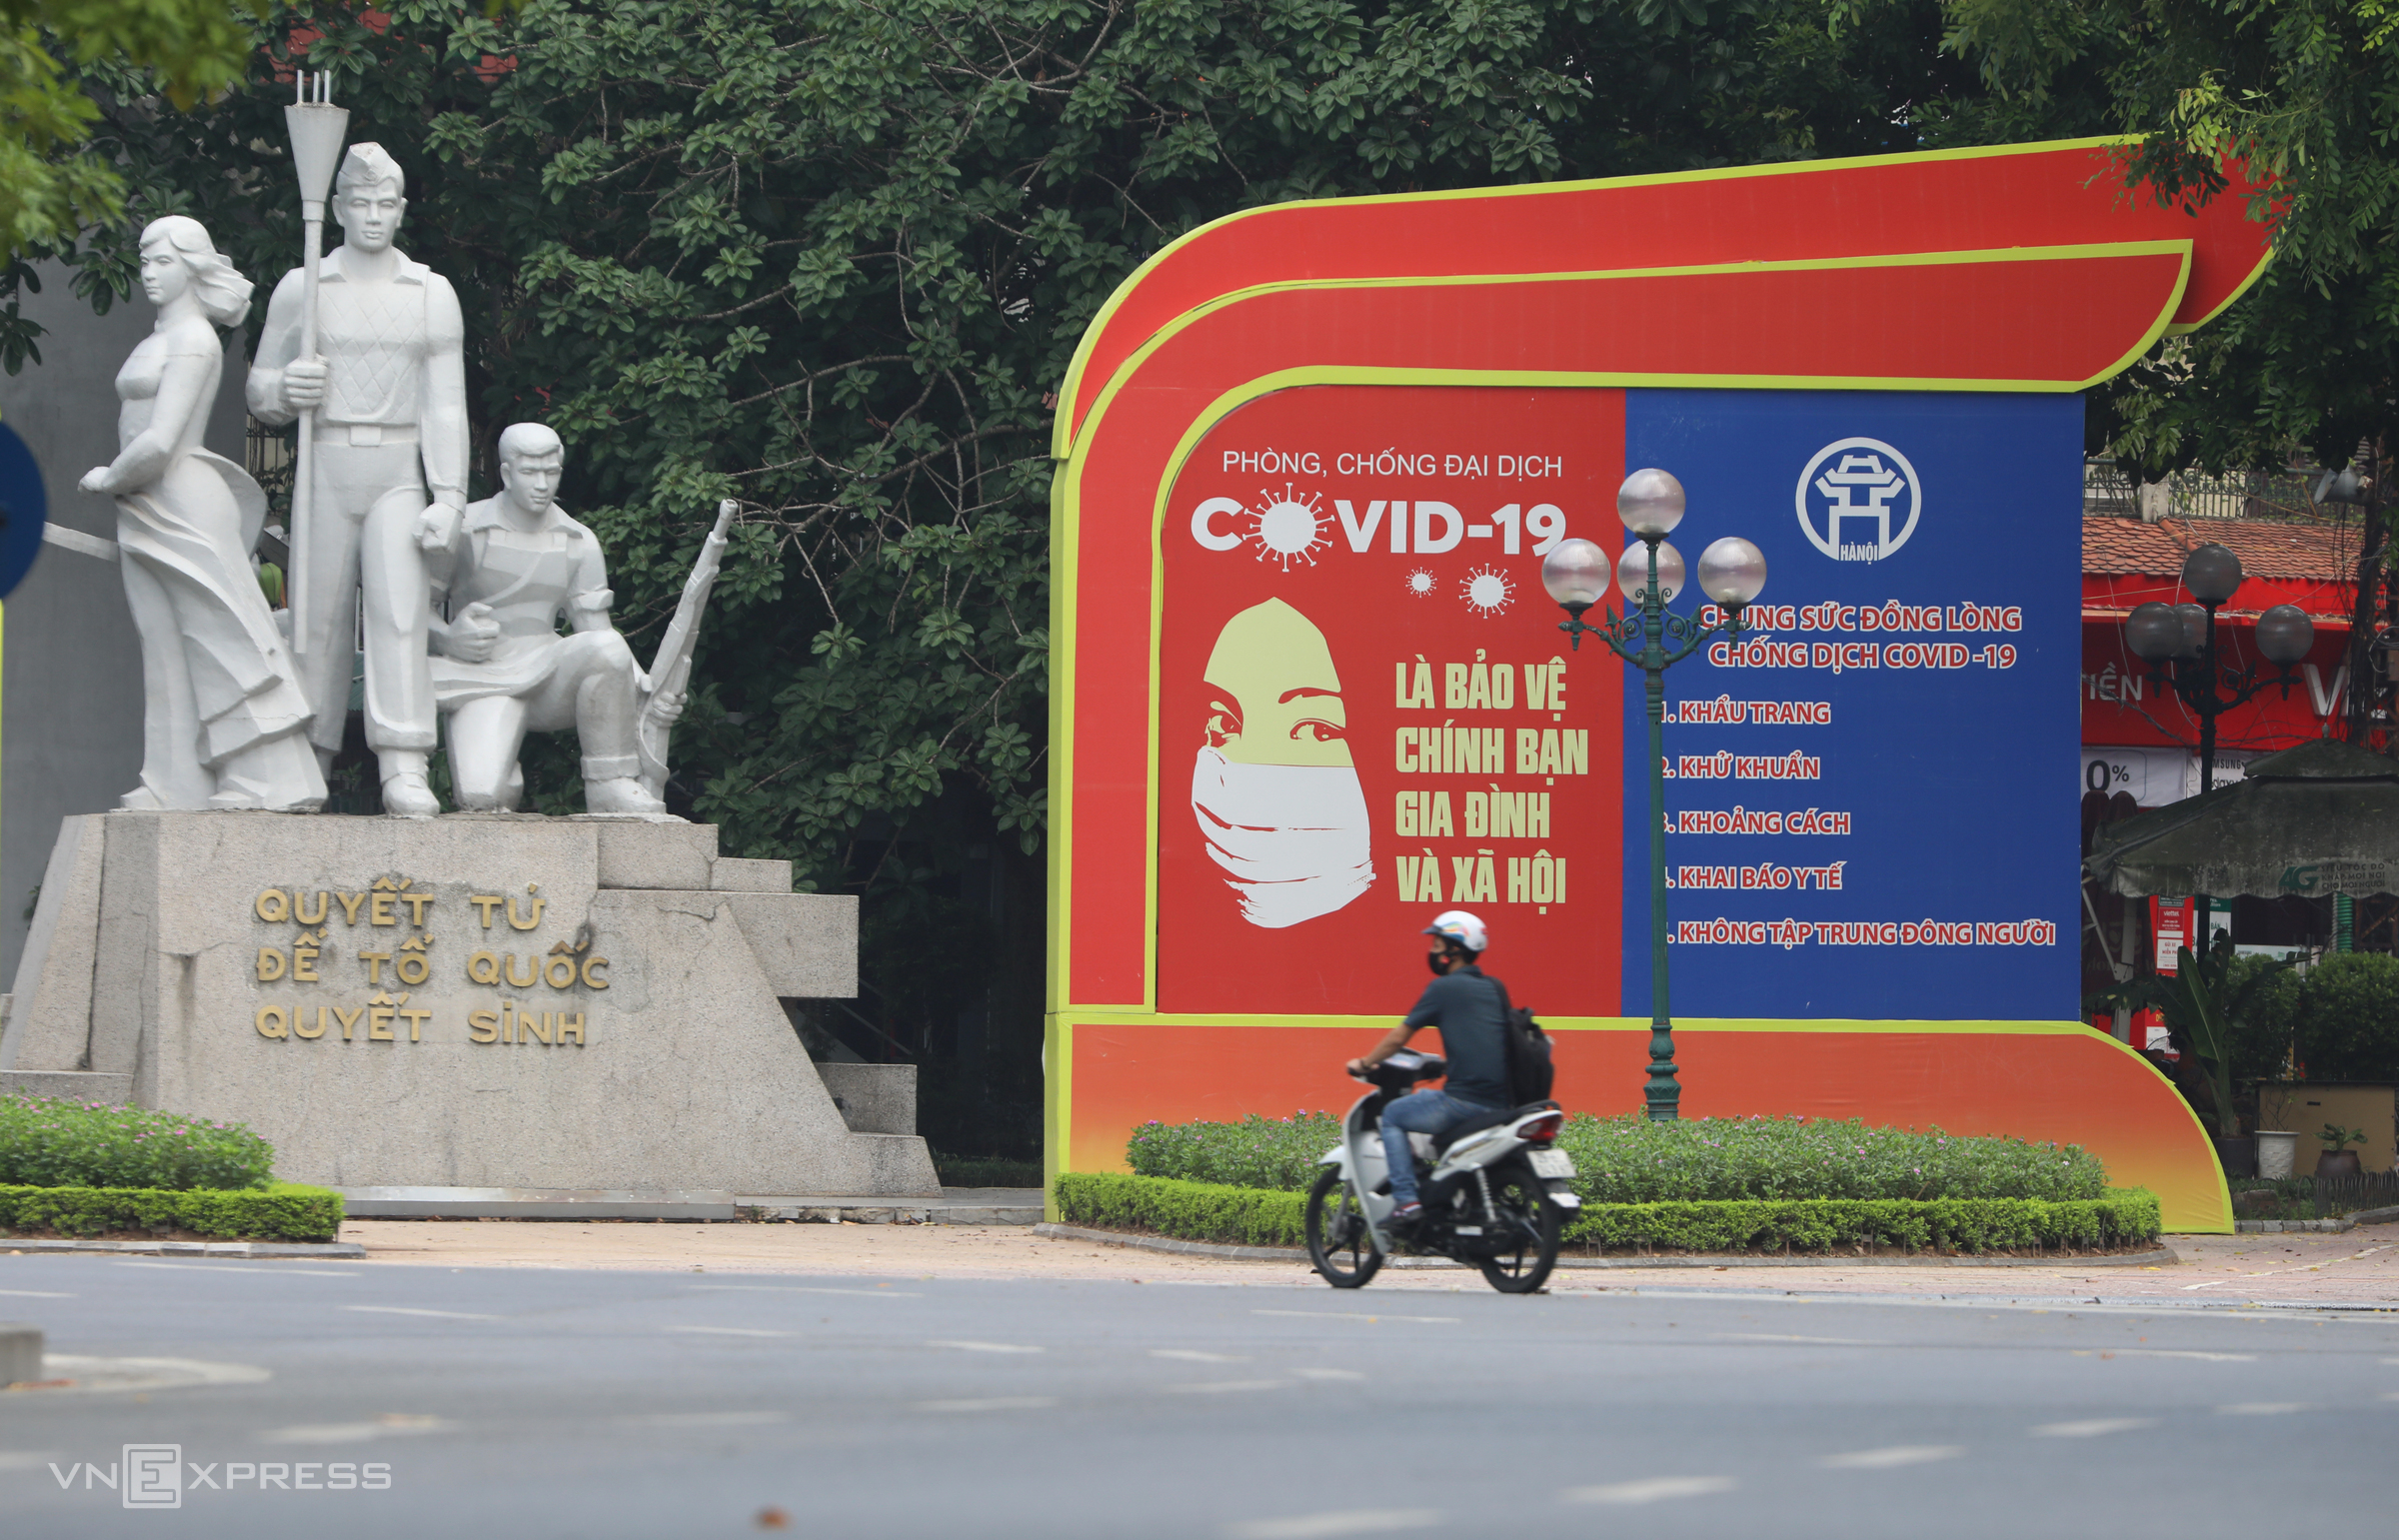 Hanoi traffic picks up with social distancing in force